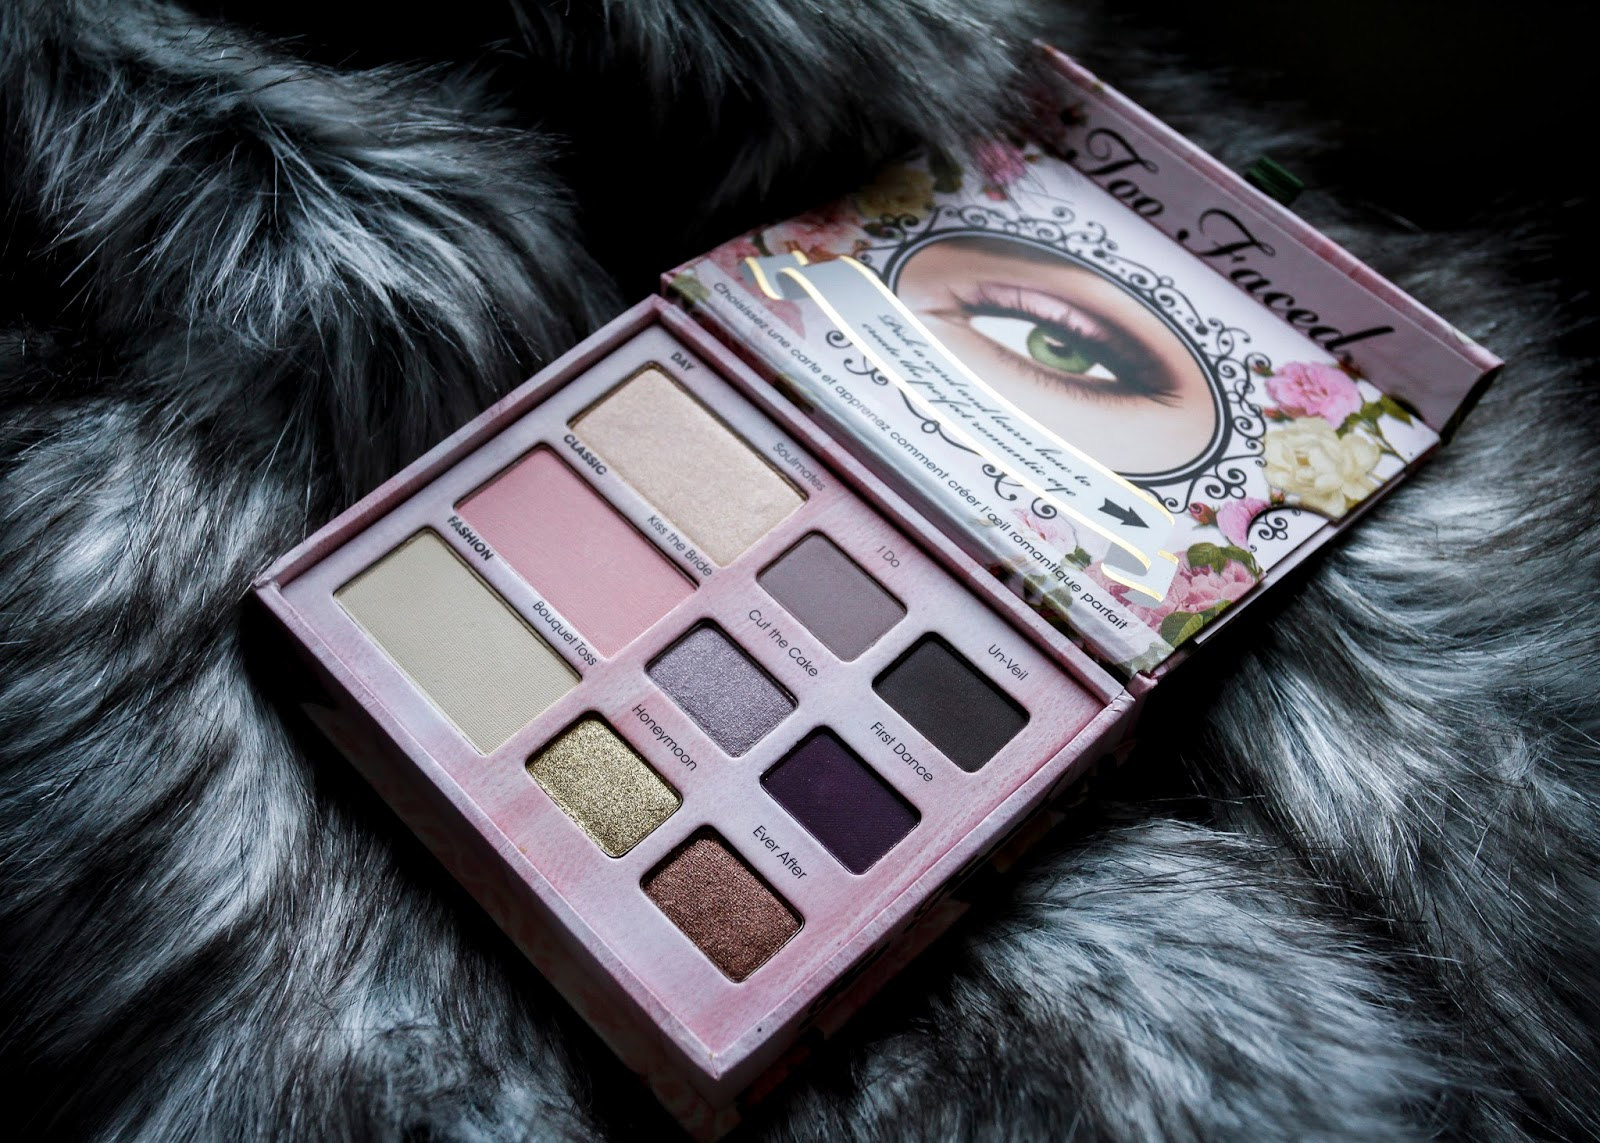 Too Faced Romantic Eye palette open on fake fur